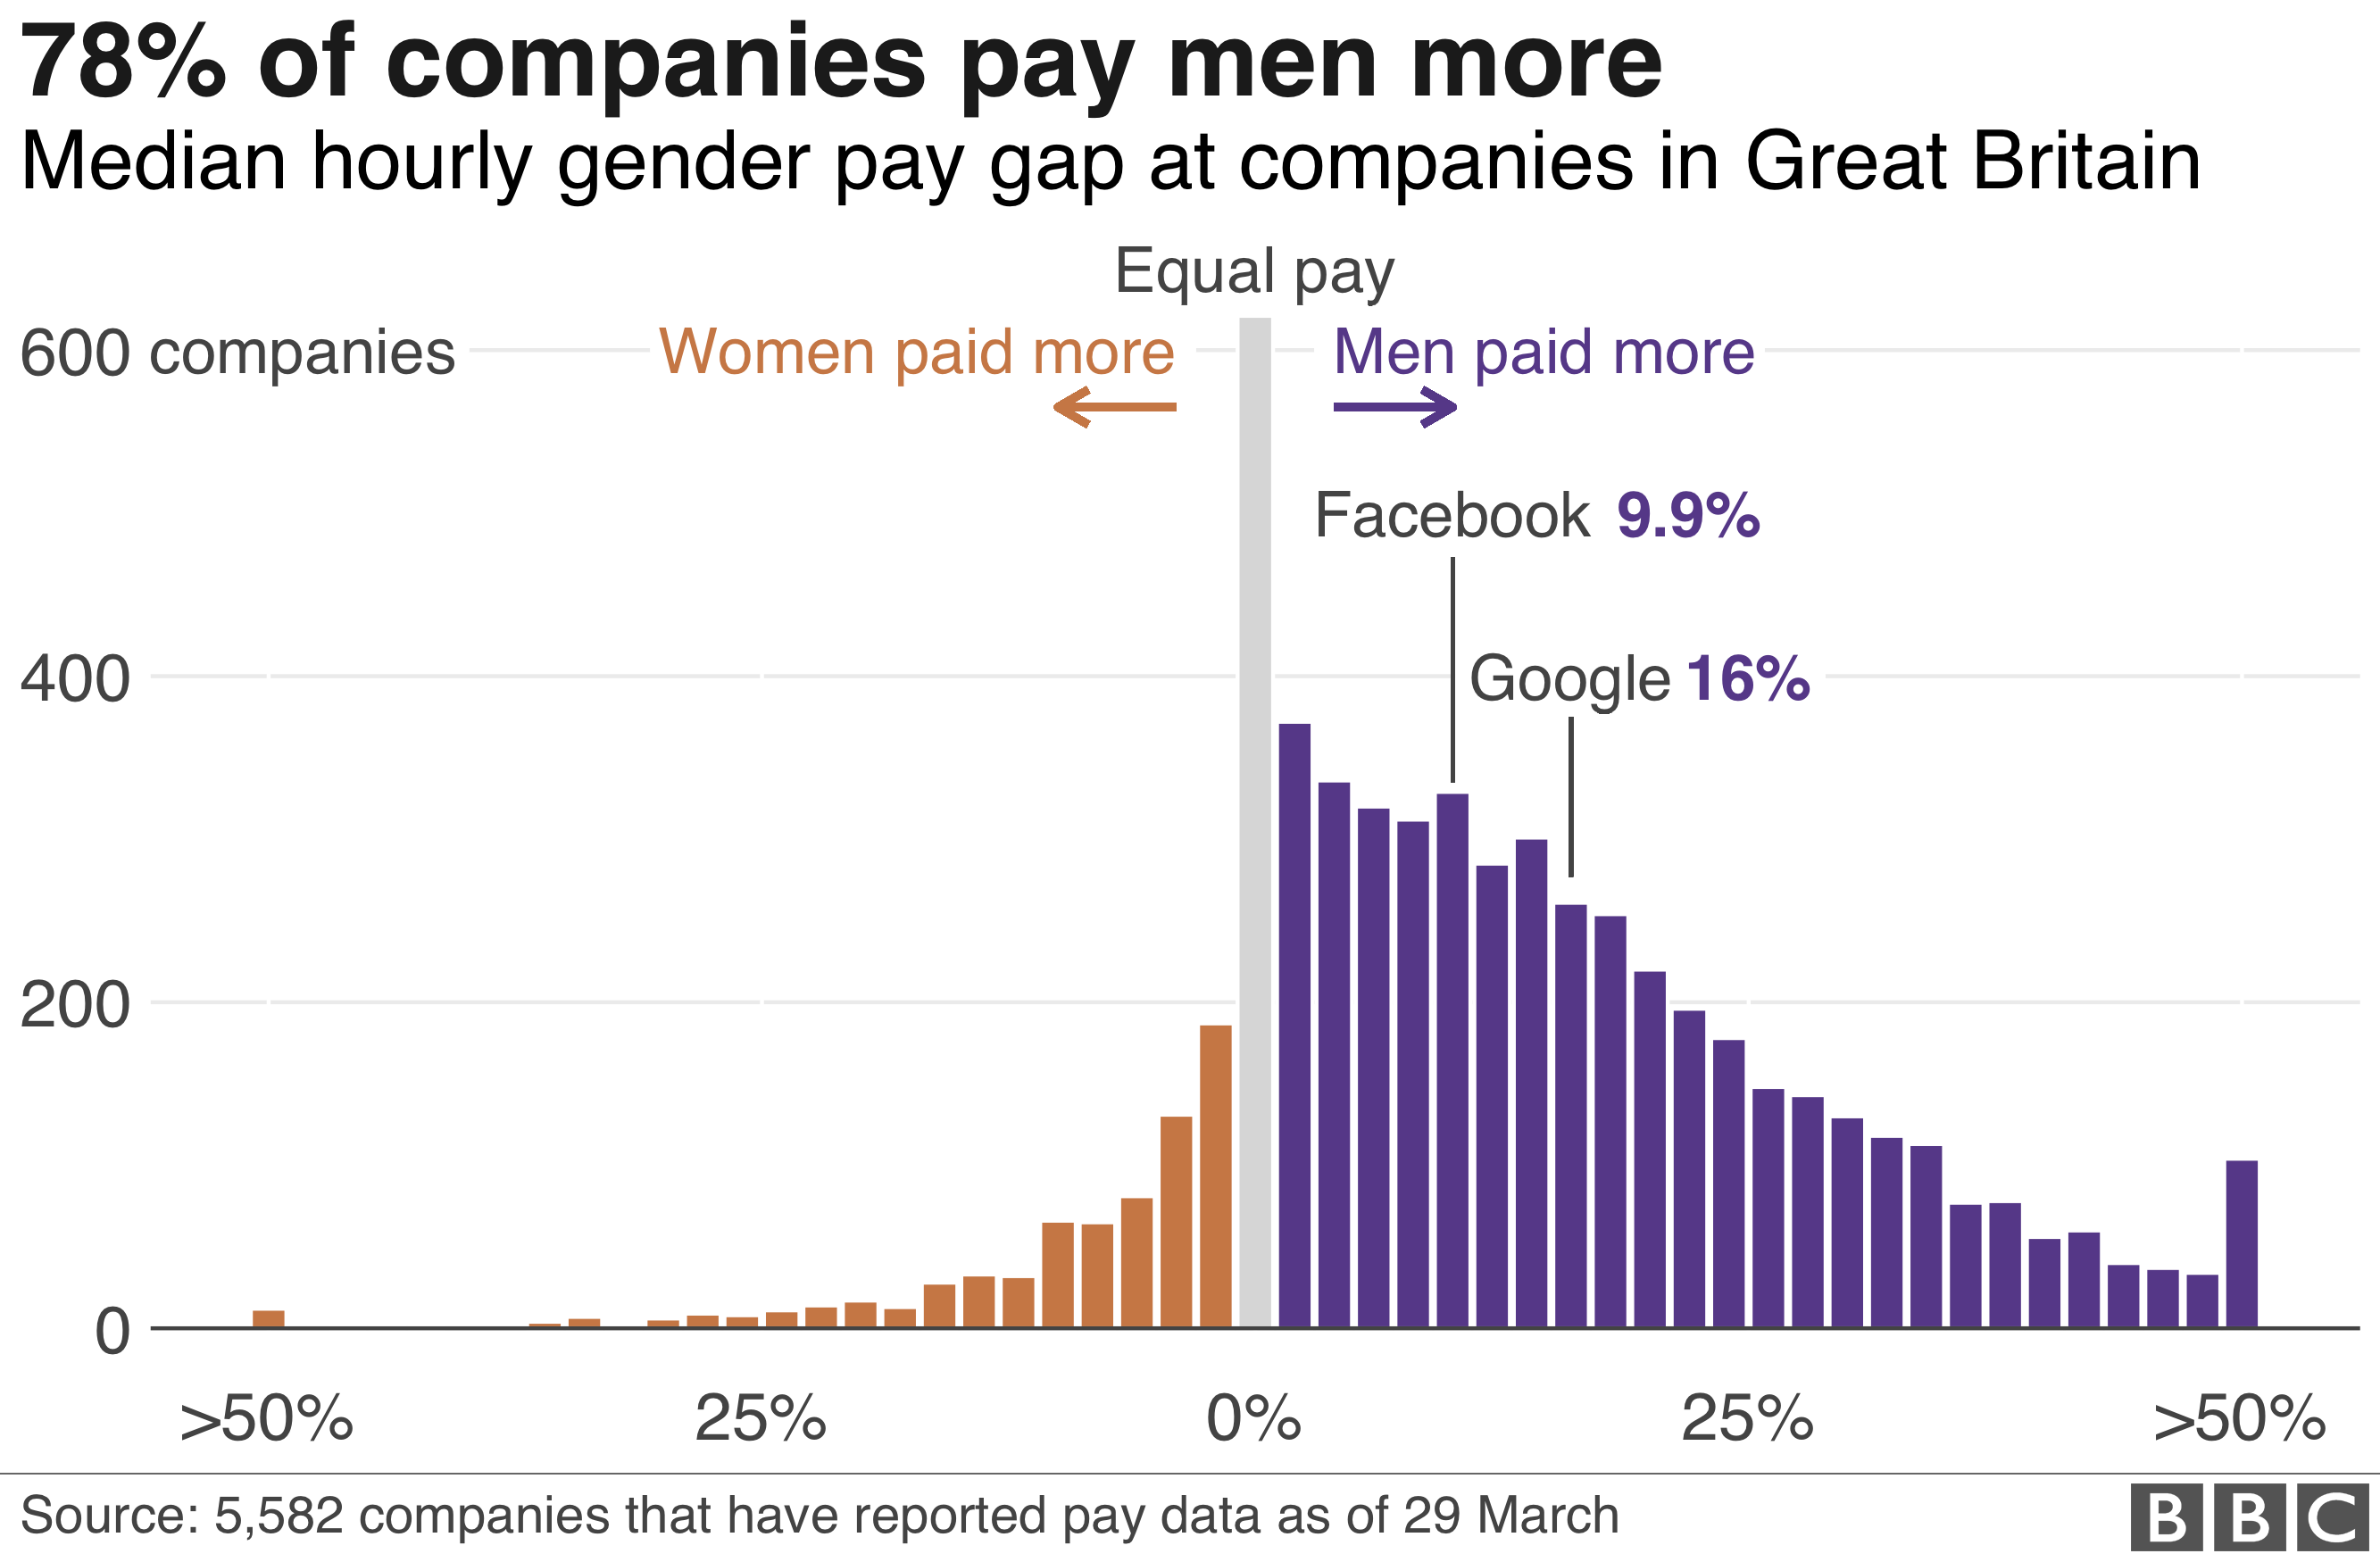 Chart showing that 78% of companies pay men more